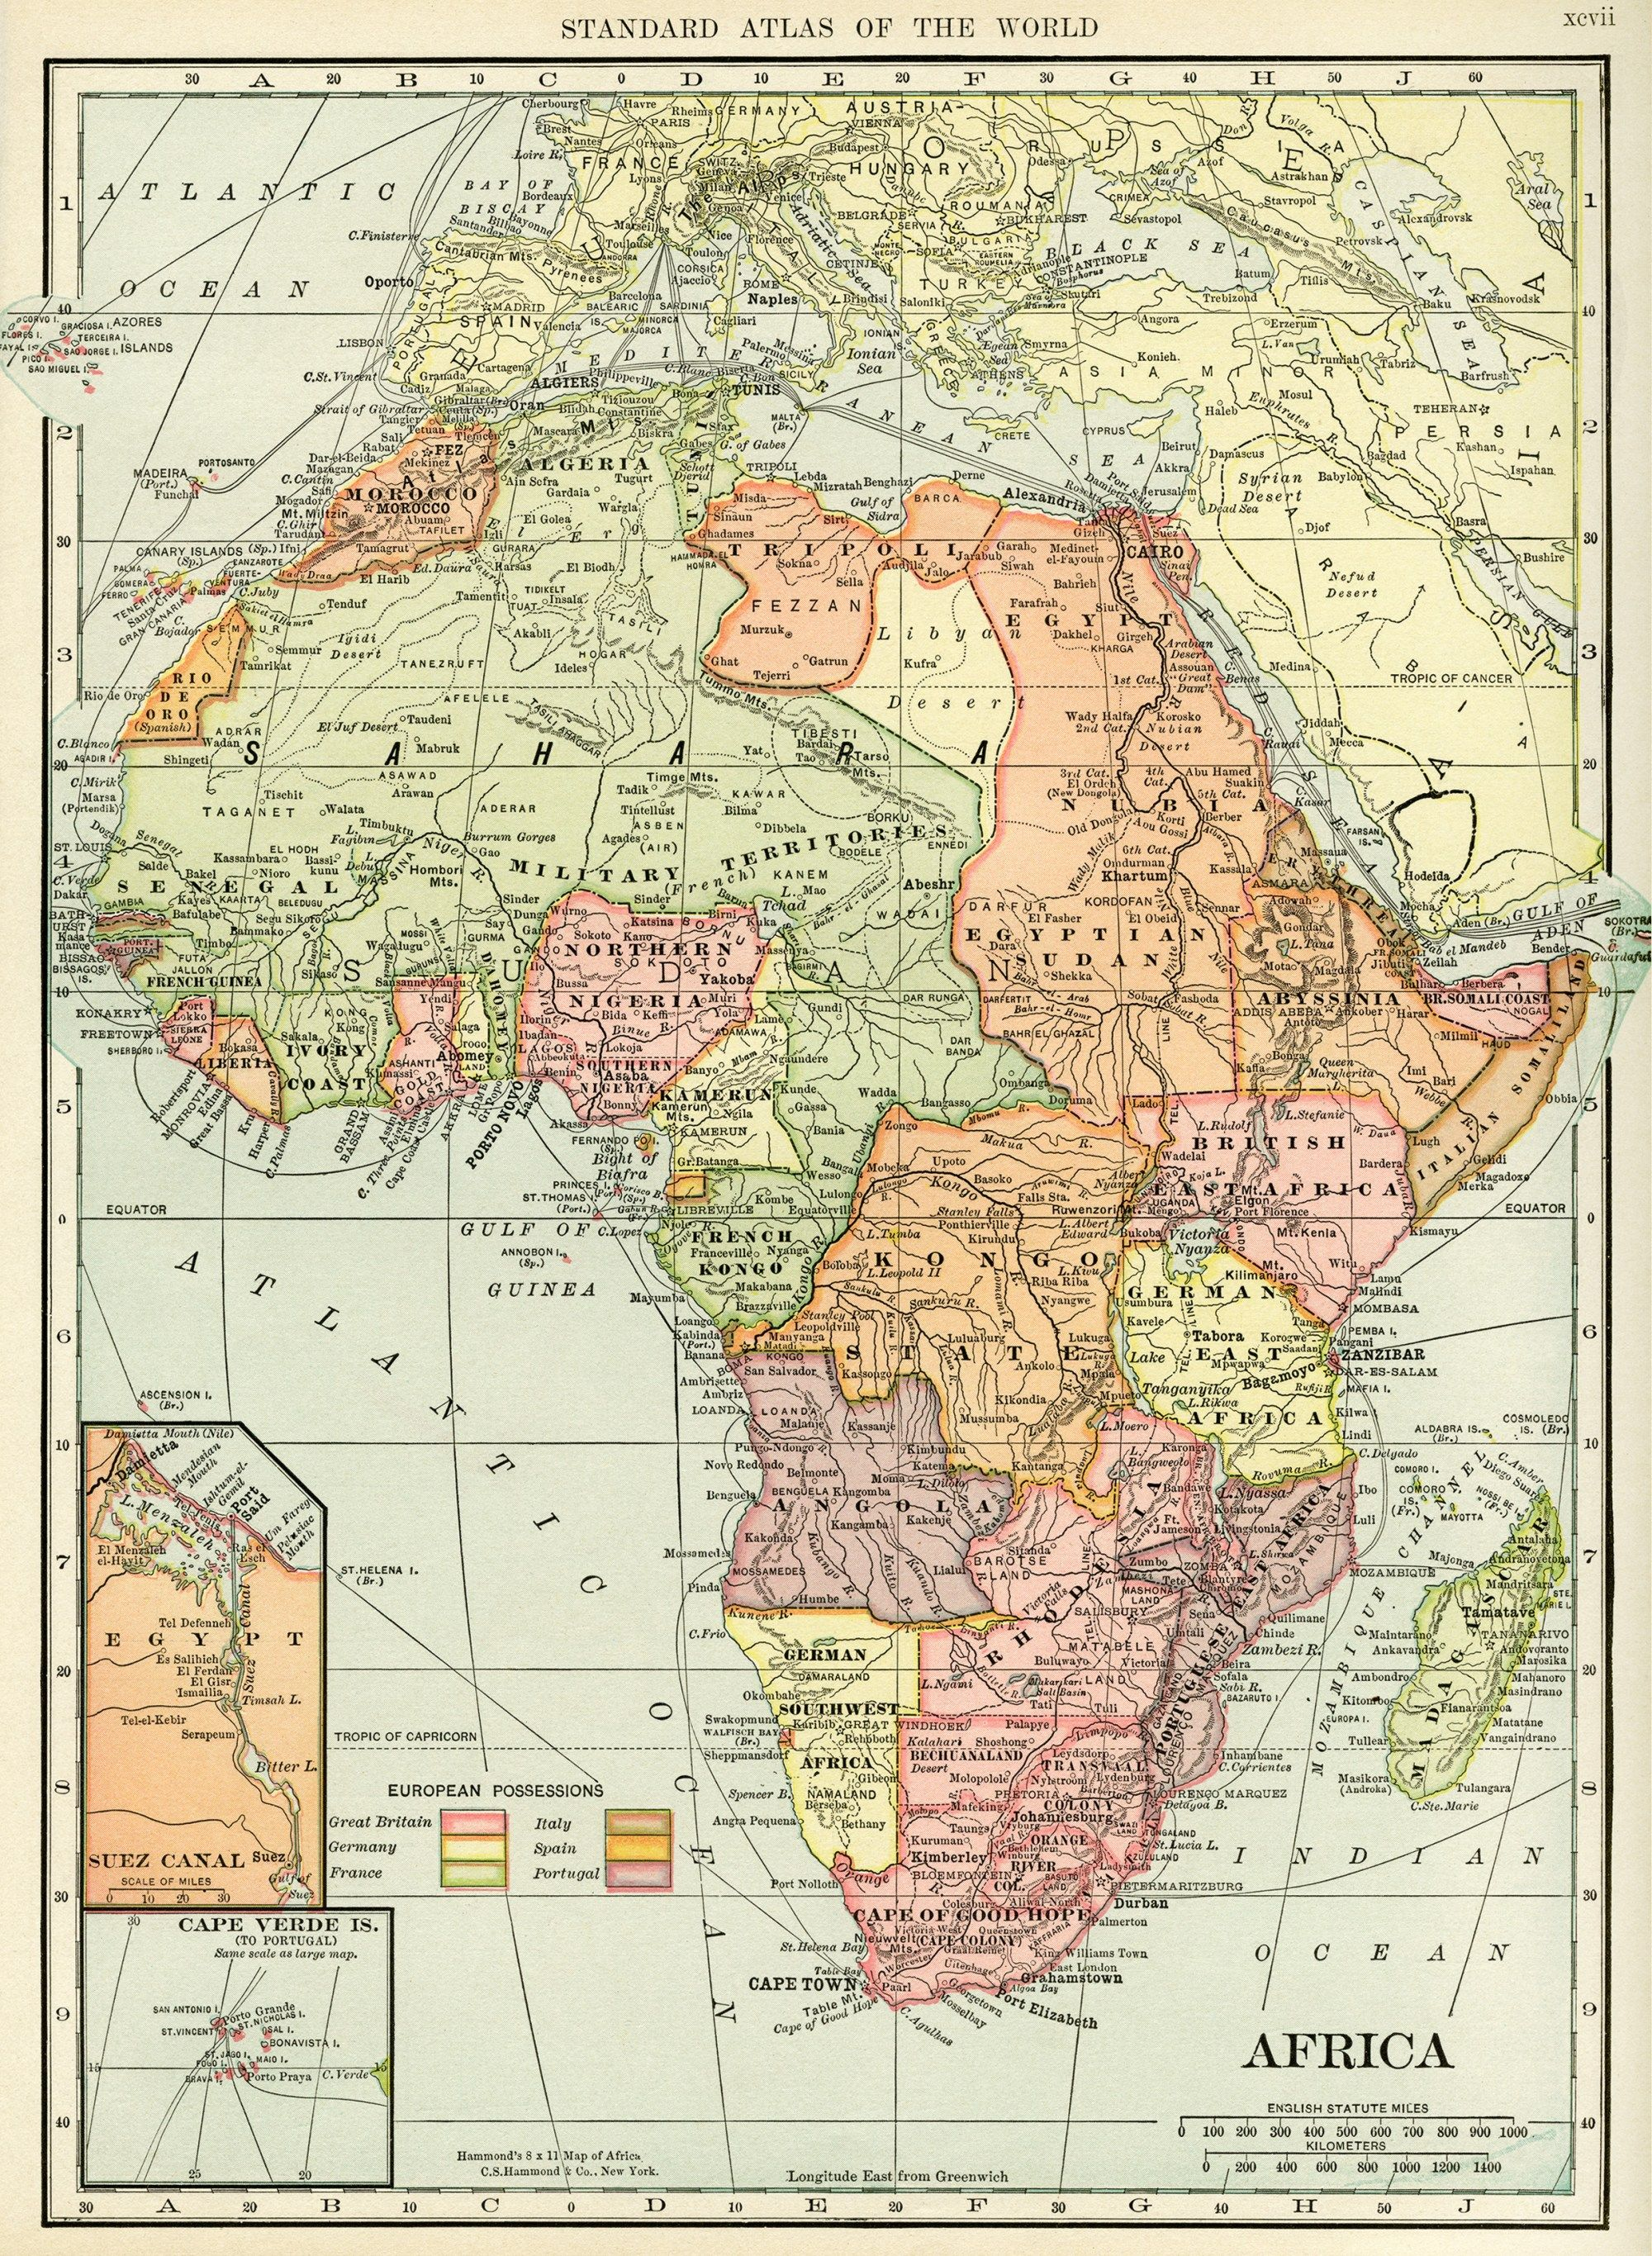 Historical Map Of Africa C S Hammond map of Africa, antique historical map, history